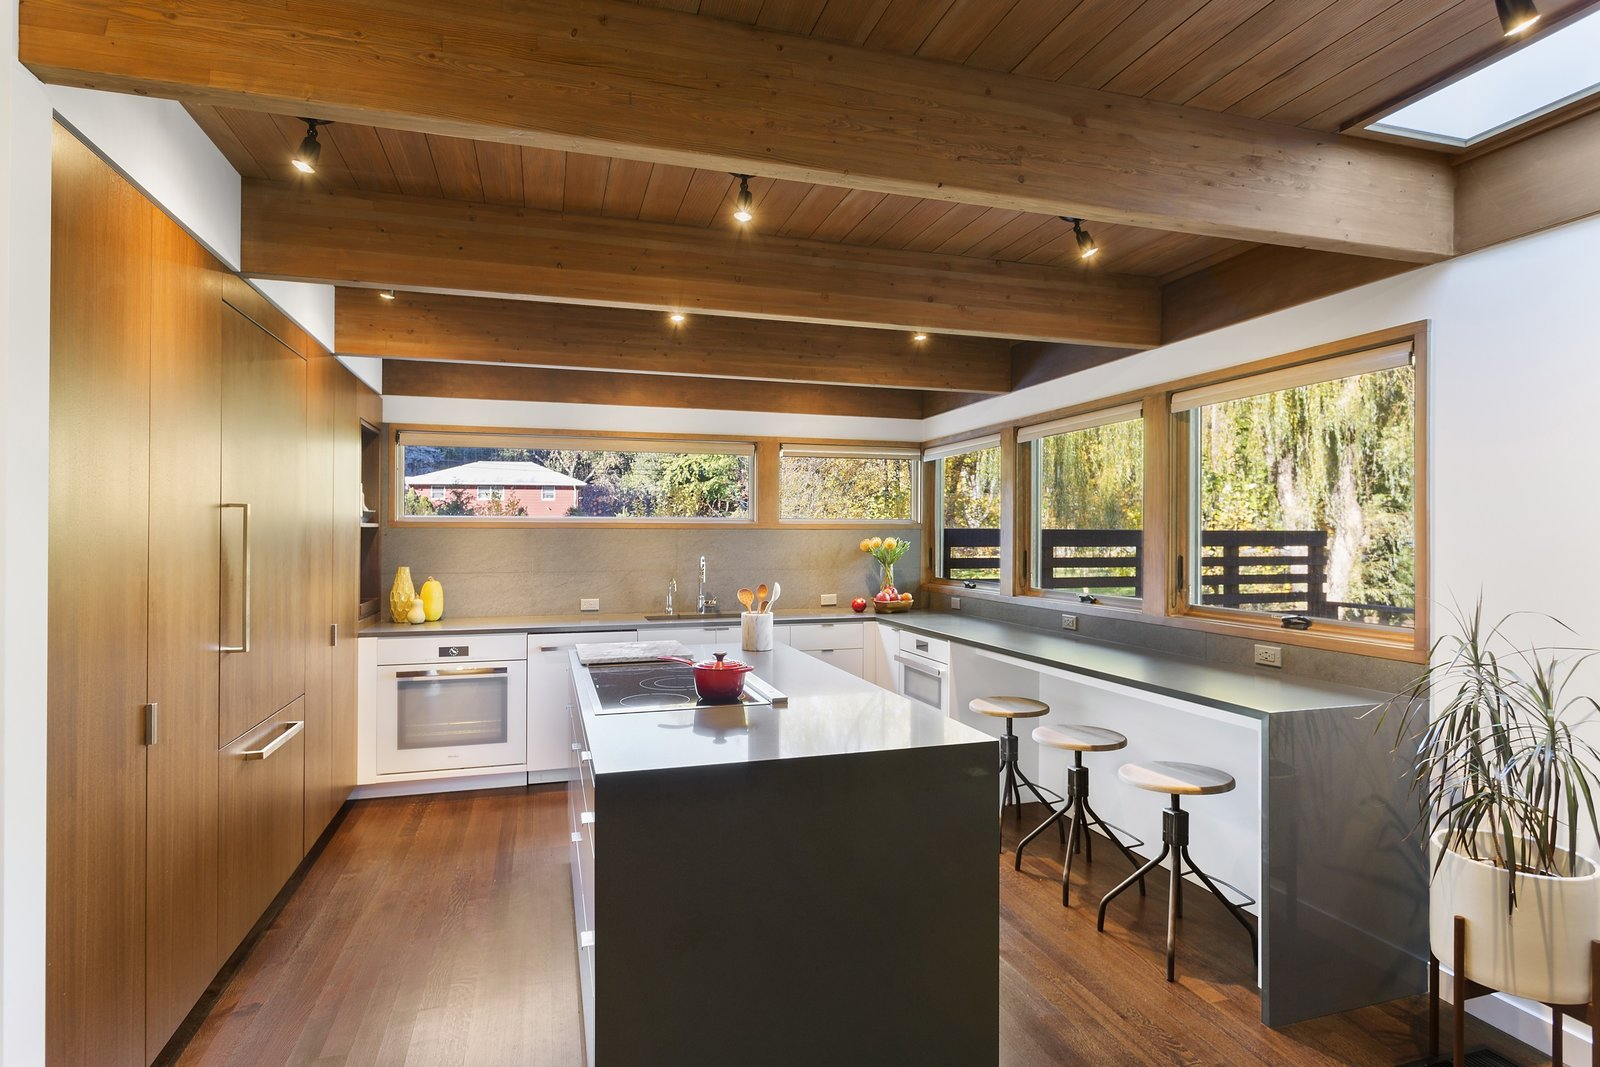 Custom cabinetry with a walnut veneer is across from Caesarstone countertops and a Basaltina tile backsplash by Stone Source.  City Skyline by Kelly Dawson